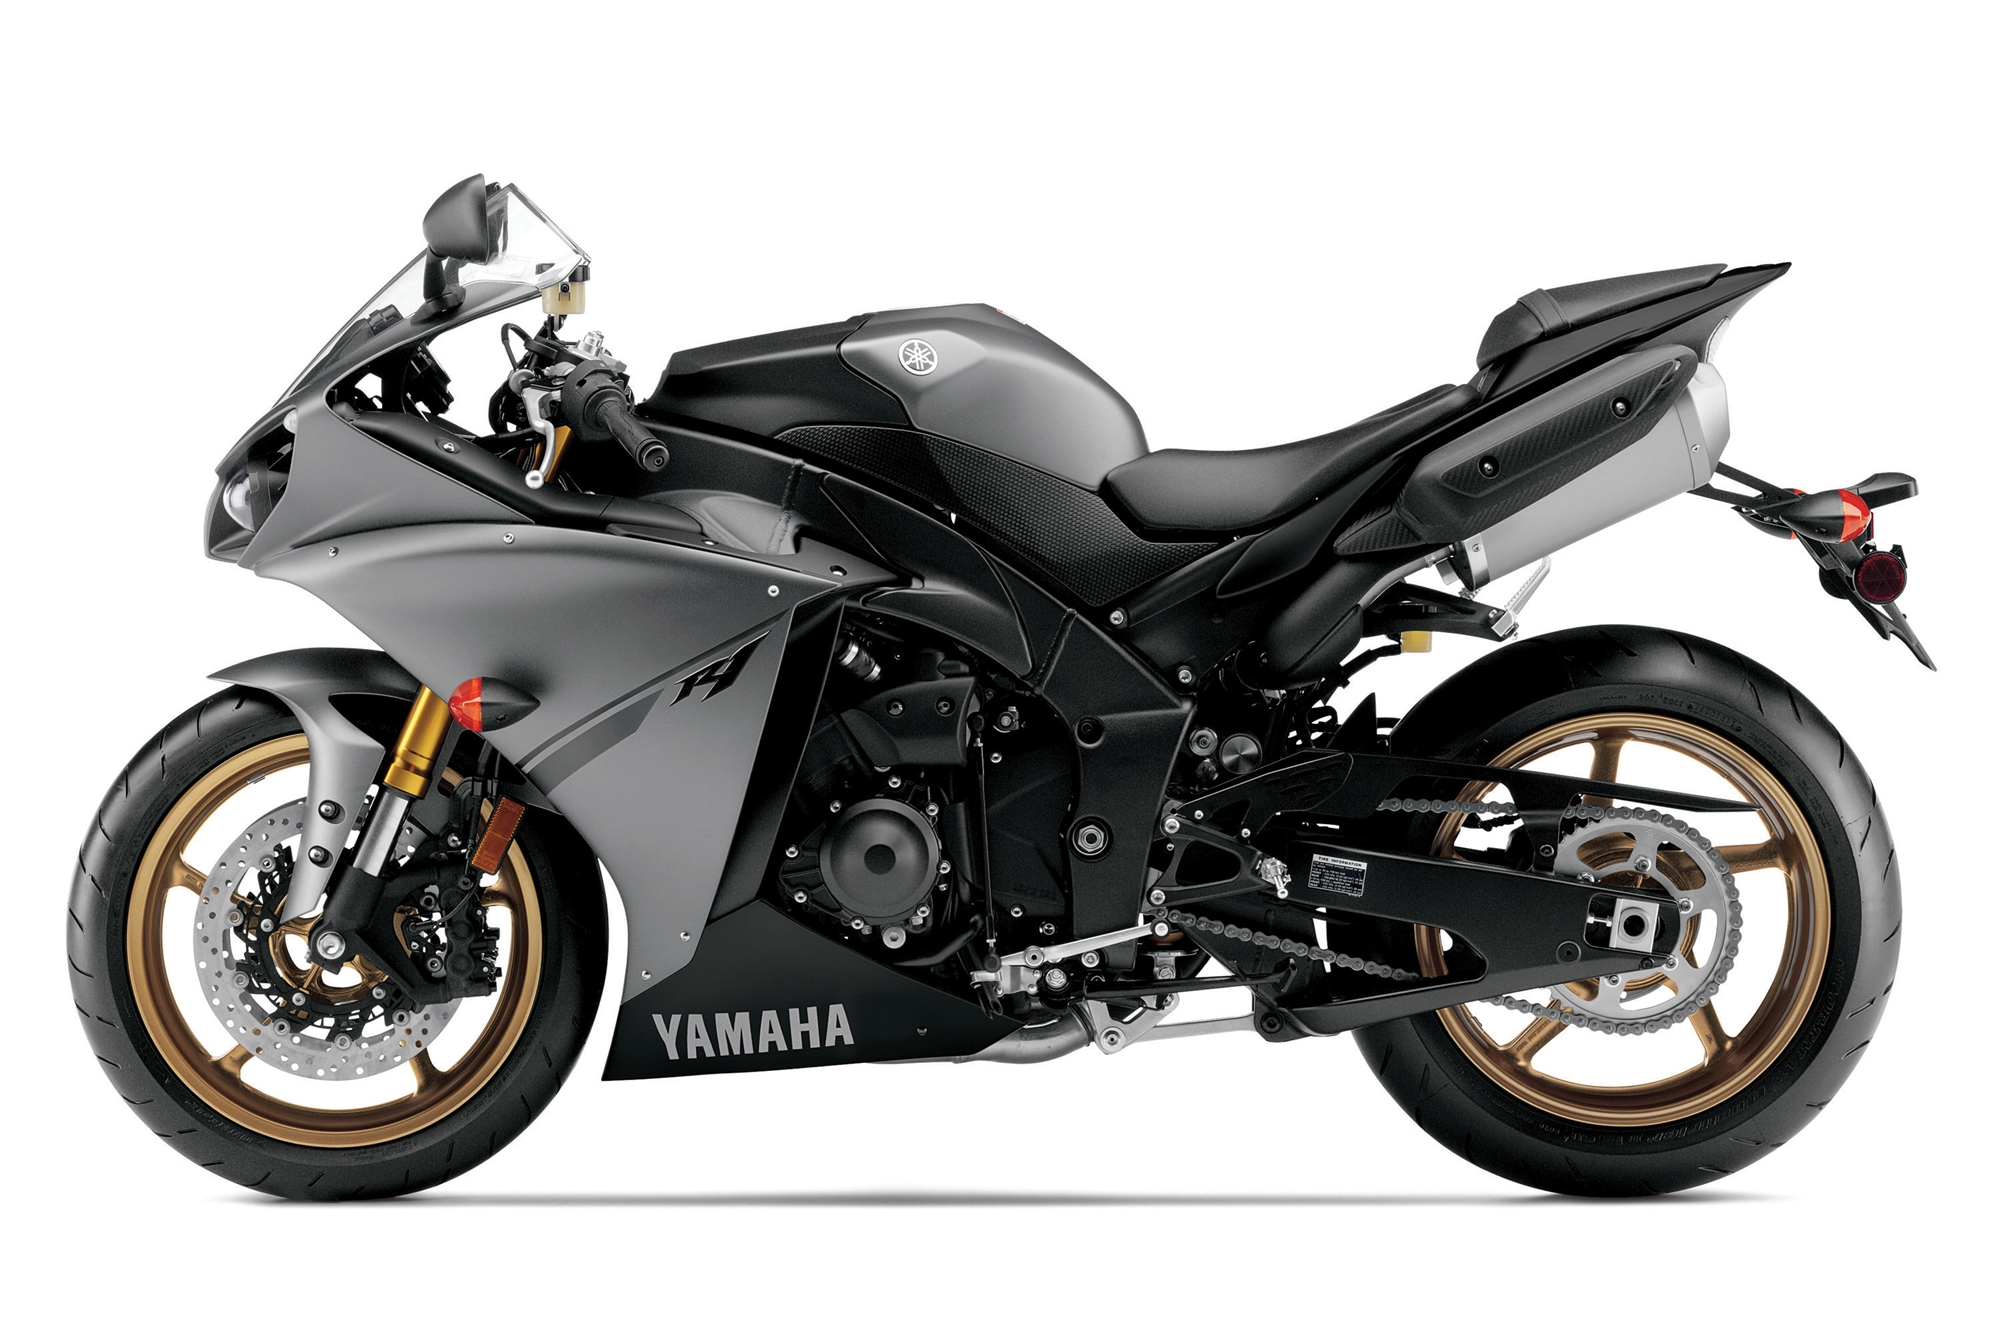 2014 yamaha yzf r1 official pictures and prices for Yamaha r1 2014